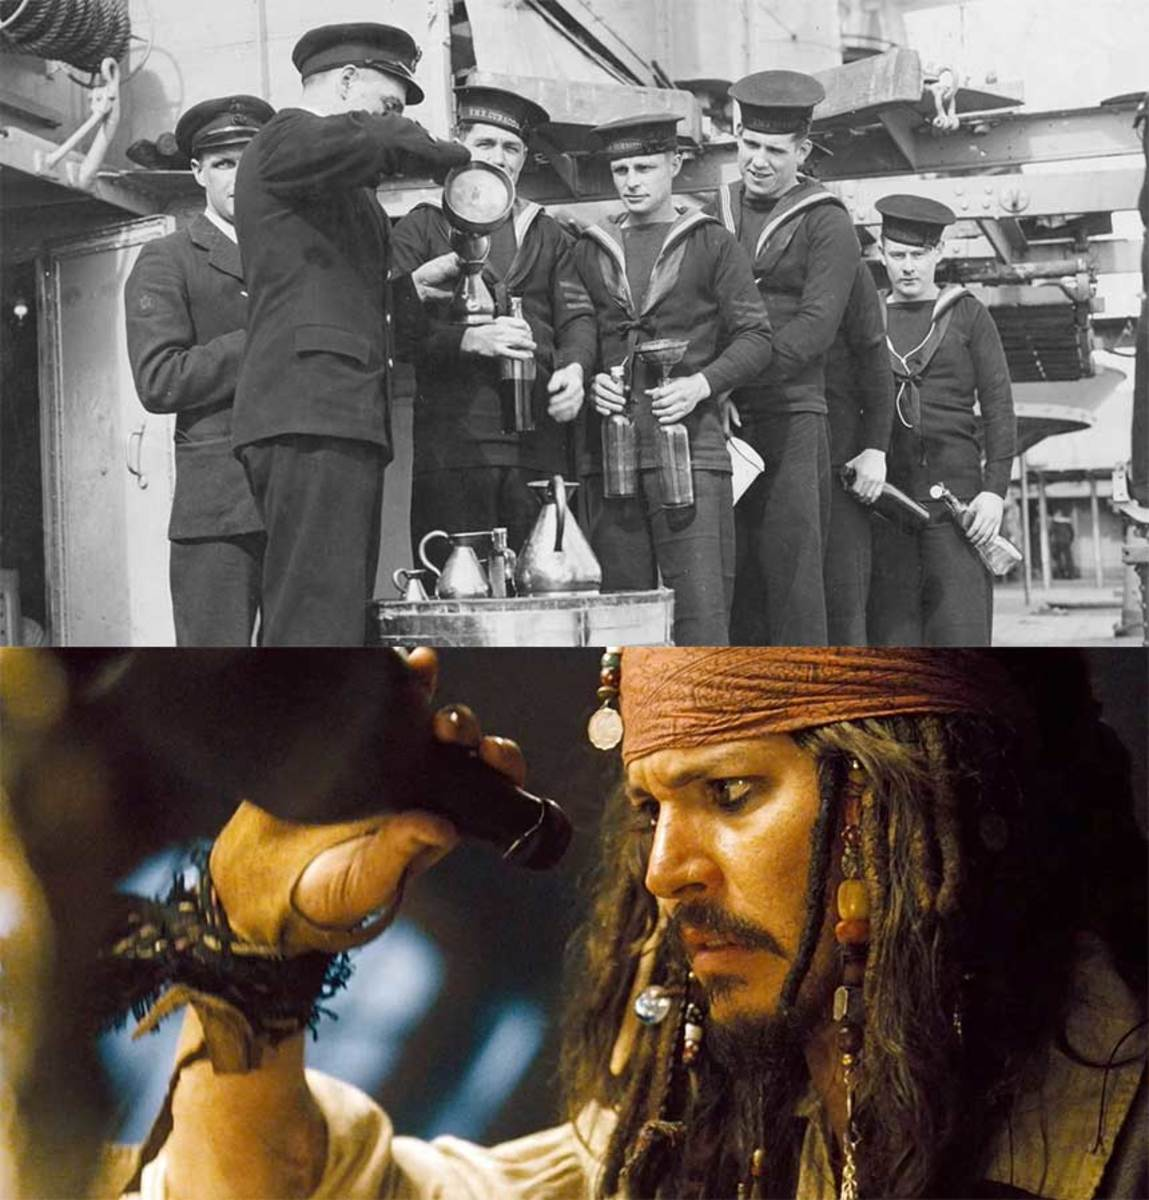 While fictional pirates like Johnny Depp's Capt. Jack Sparrow (bottom image) are the seafarers most often associated with rum, it was really the British Royal Navy's daily tot ritual that made rum the sailors' drink.